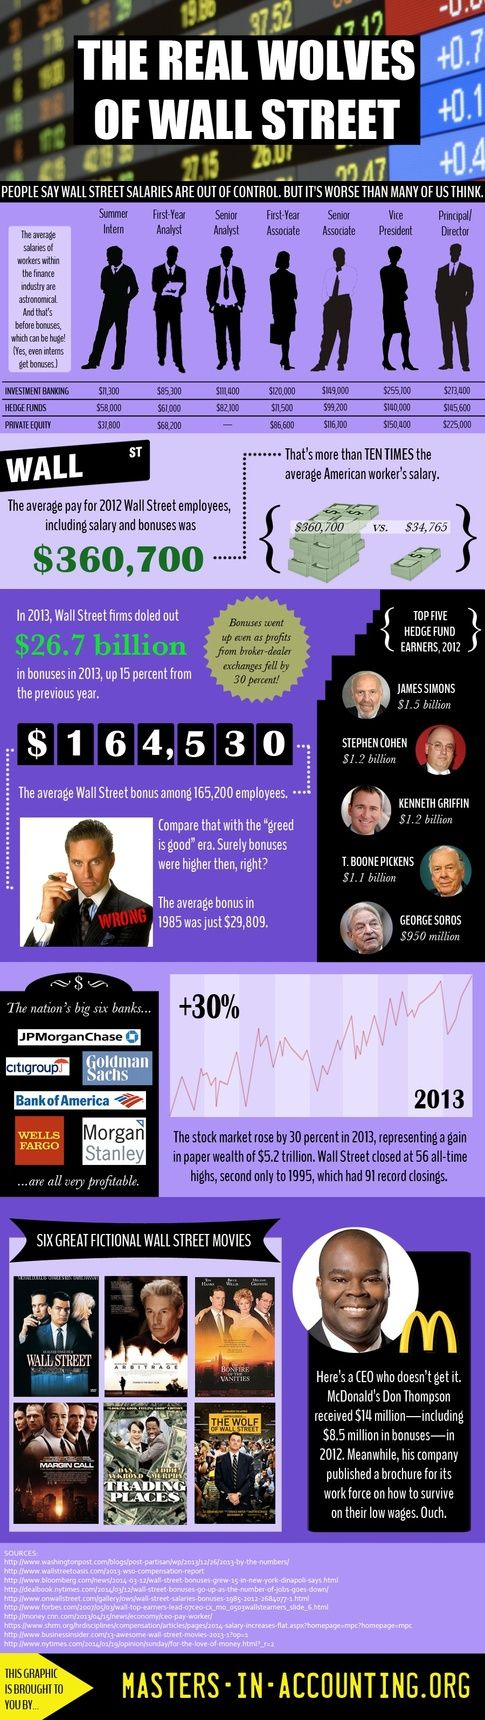 Wall street il denaro non dorme mai amazon it michael douglas - What Is The Entry Salary Of An Investment Banker In Wall Street Quora